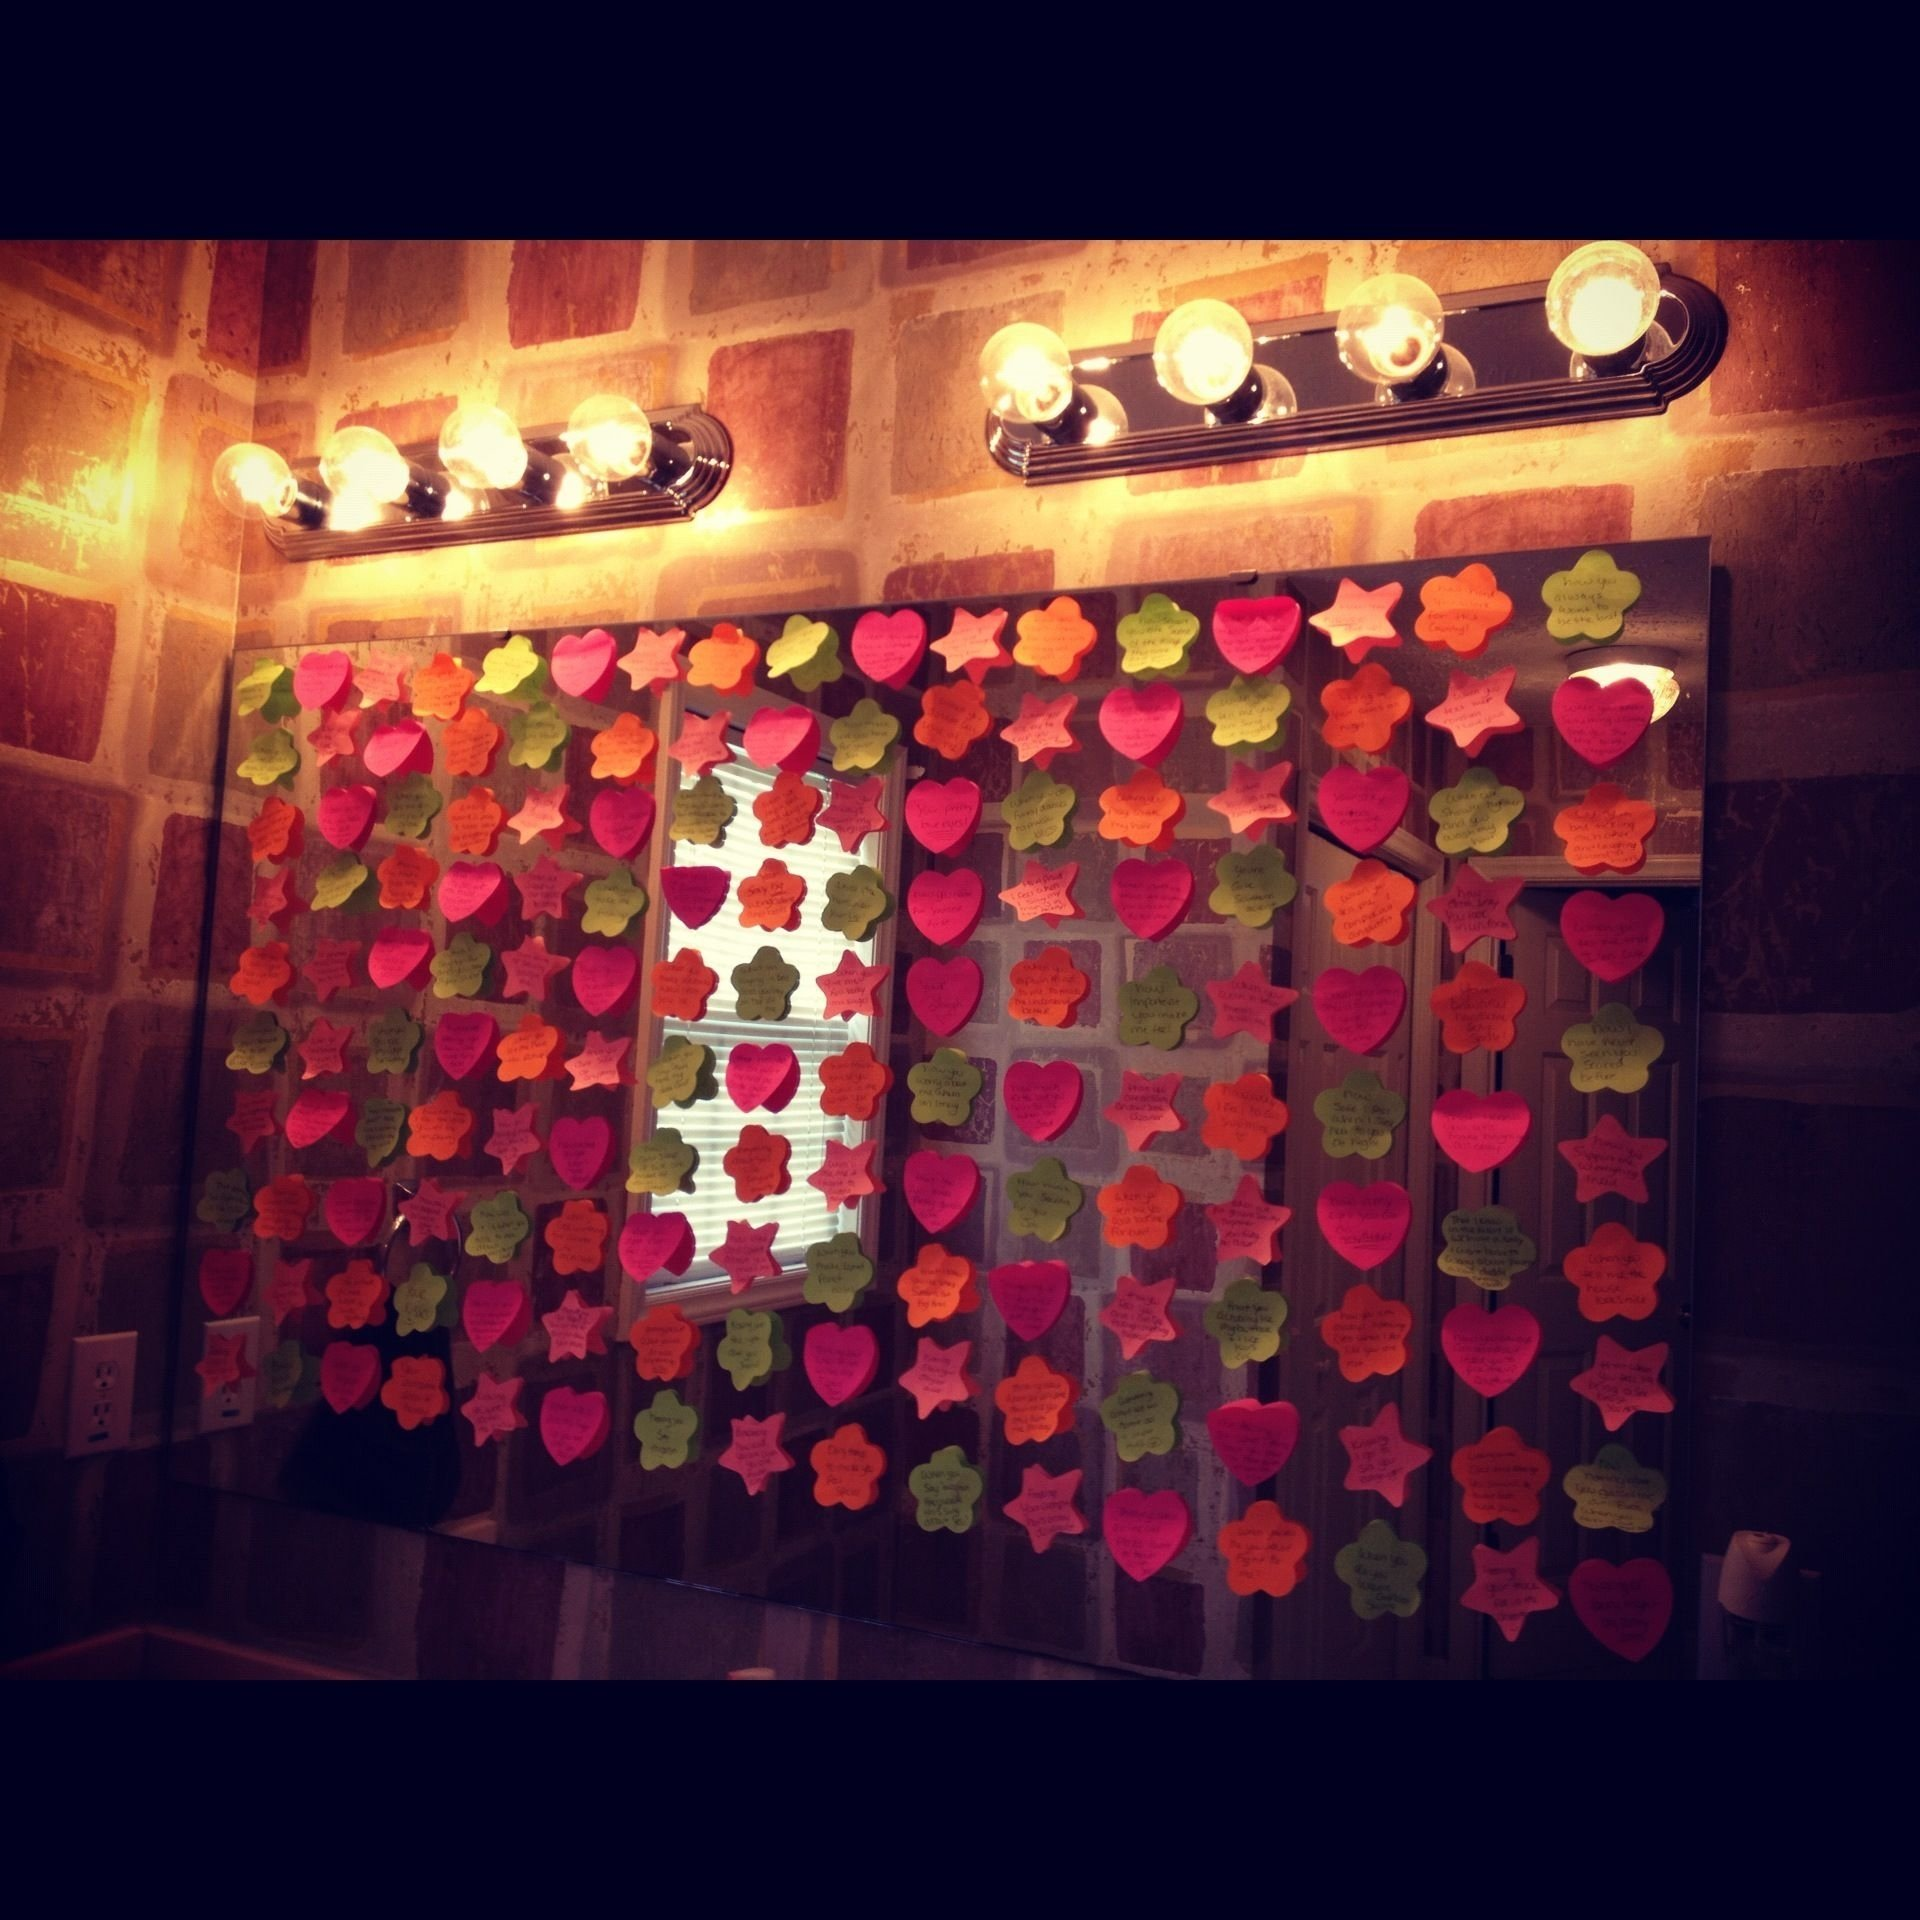 10 Trendy Cute Valentines Day Ideas For Husband cute valentines day ideas 170 post it notes with reasons why i love 1 2020